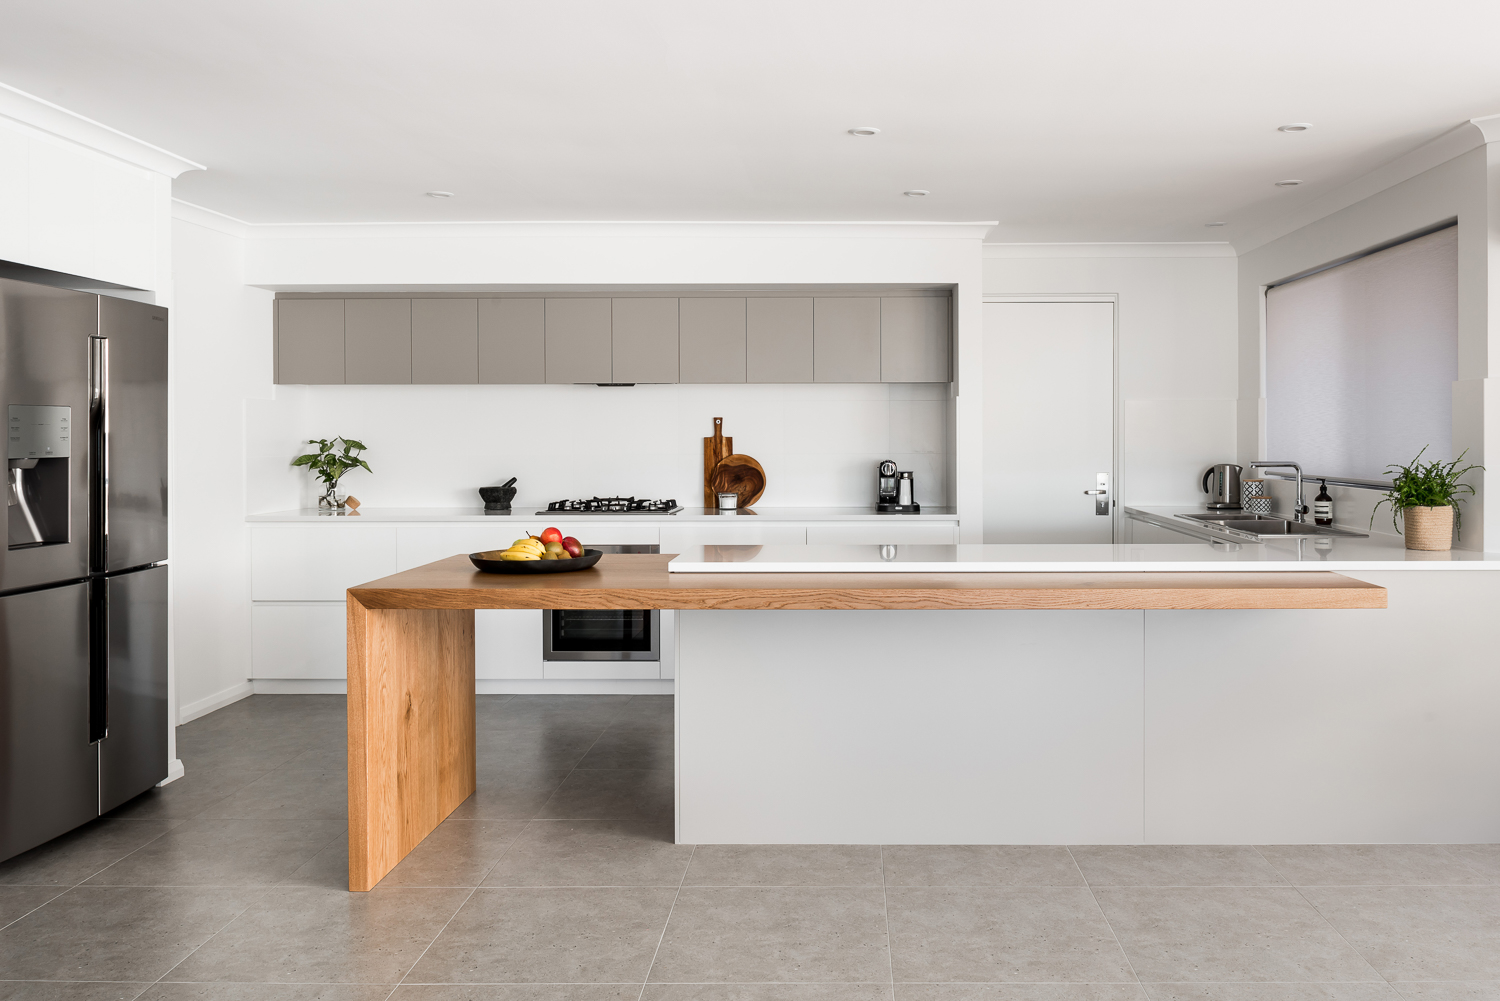 Evolution was invited to make mealtimes exciting again, create more space for the family to interact and live, and add a finishing touch with all new appliances